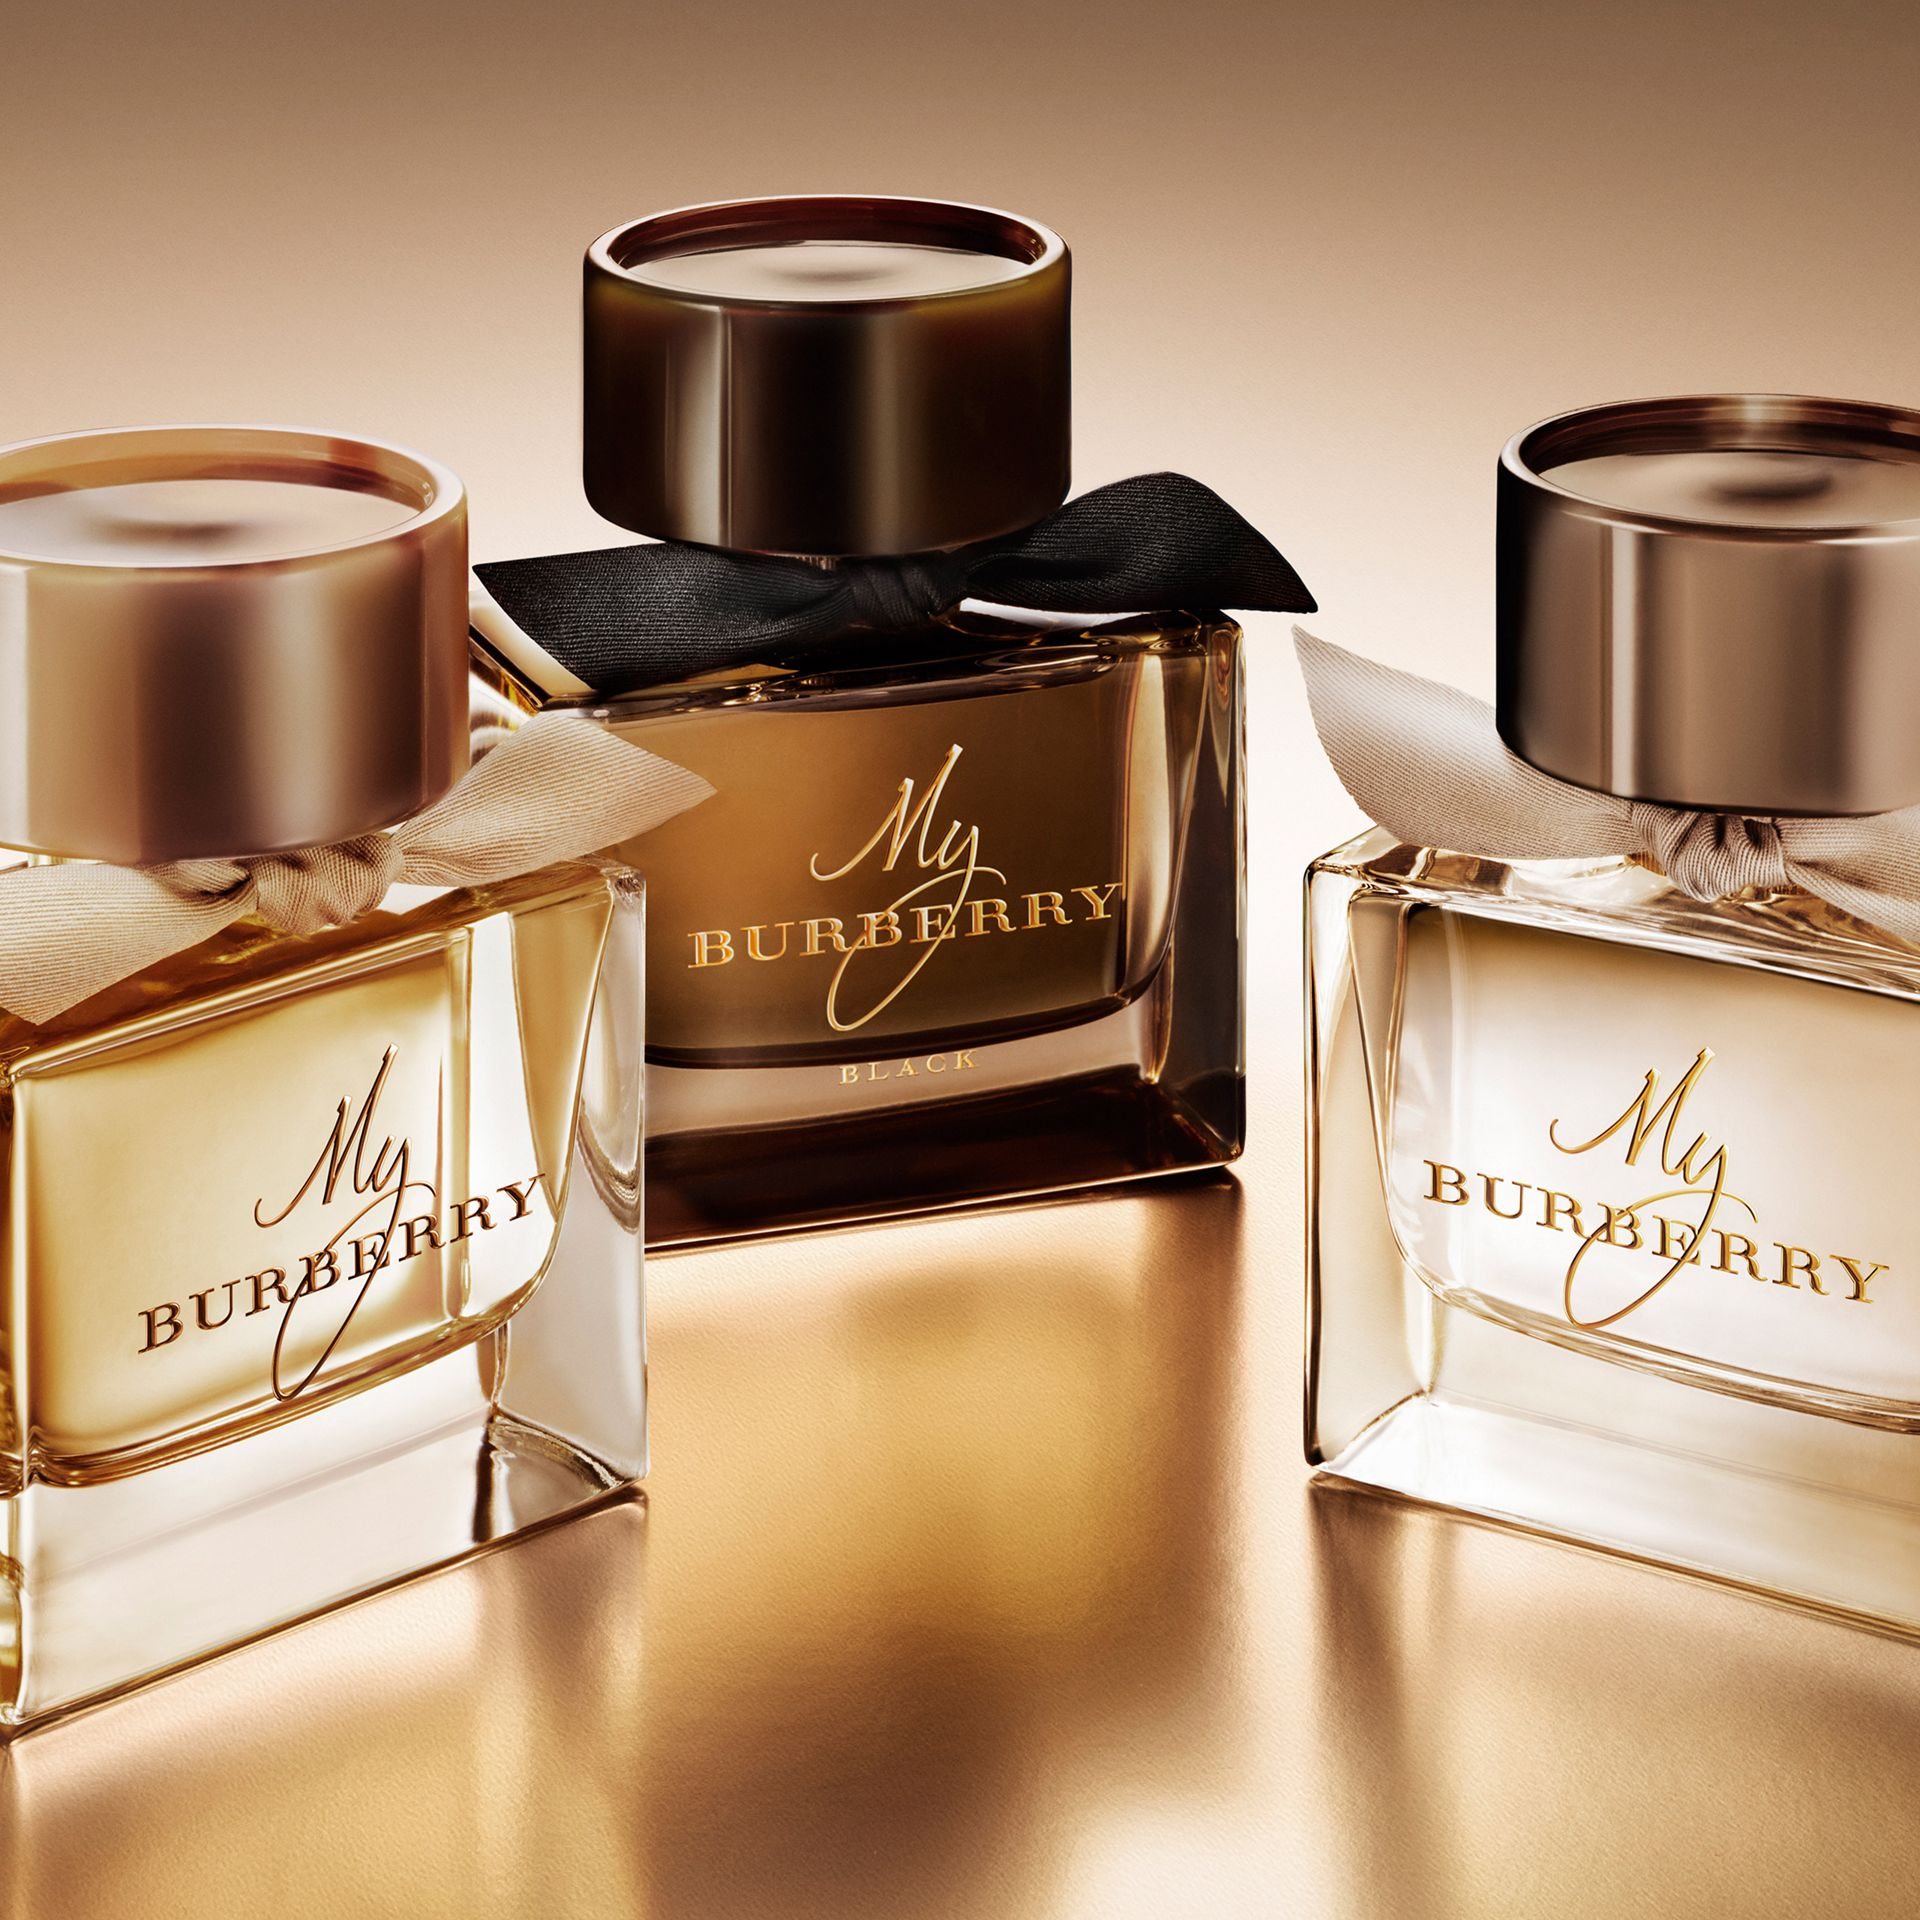 My Burberry Eau de Parfum 900 ml in der Sammleredition - Galerie-Bild 3